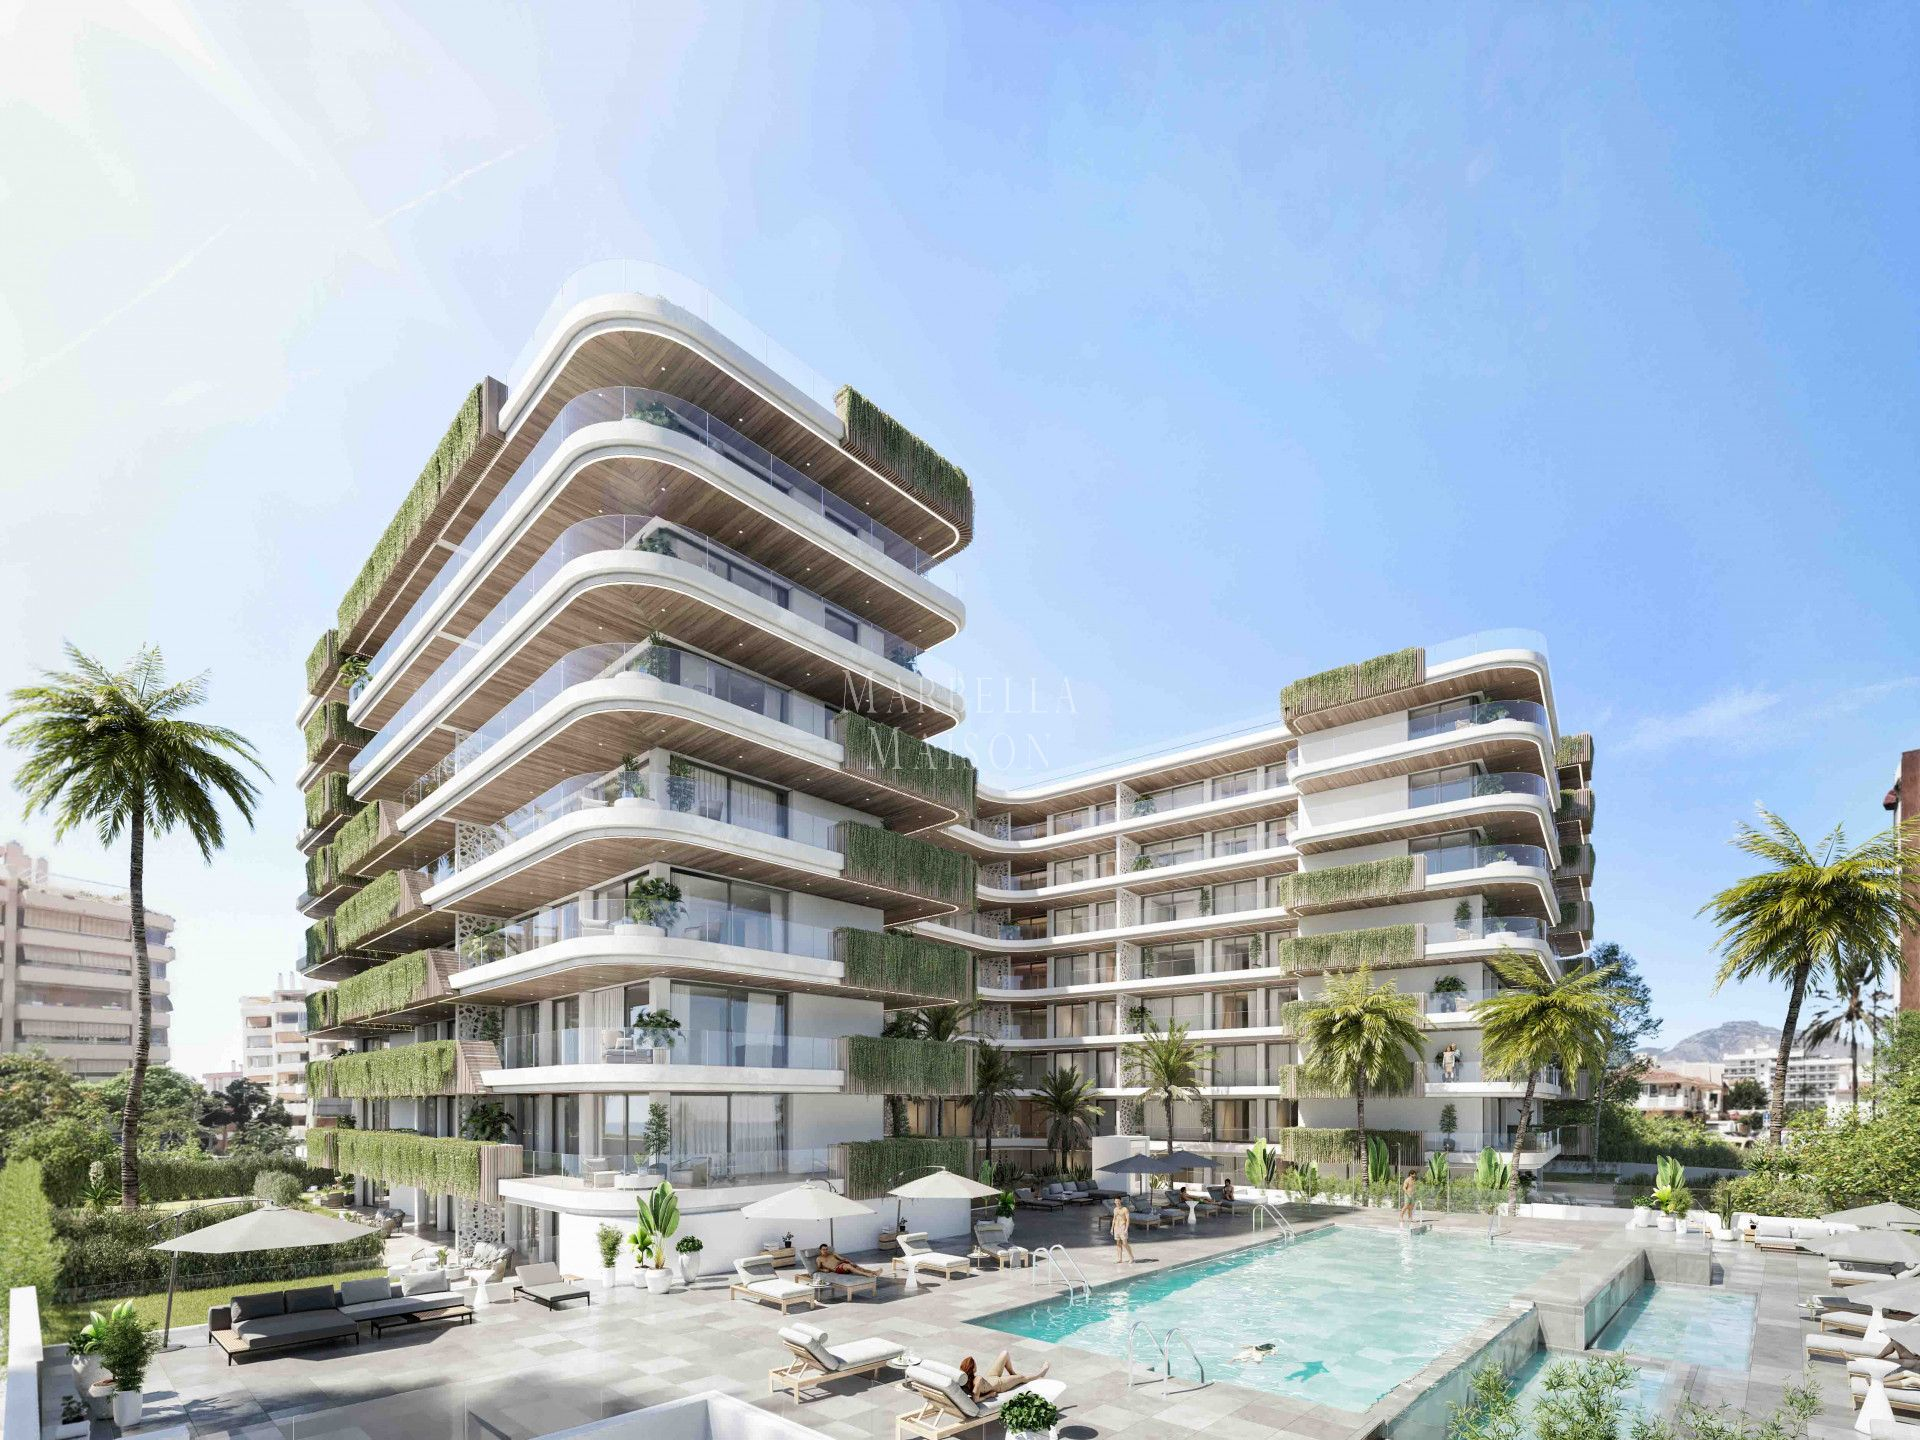 LUXURIOUS NEW APARTMENT WITH LEISURE FACILITIES IN FUENGIROLA in Fuengirola